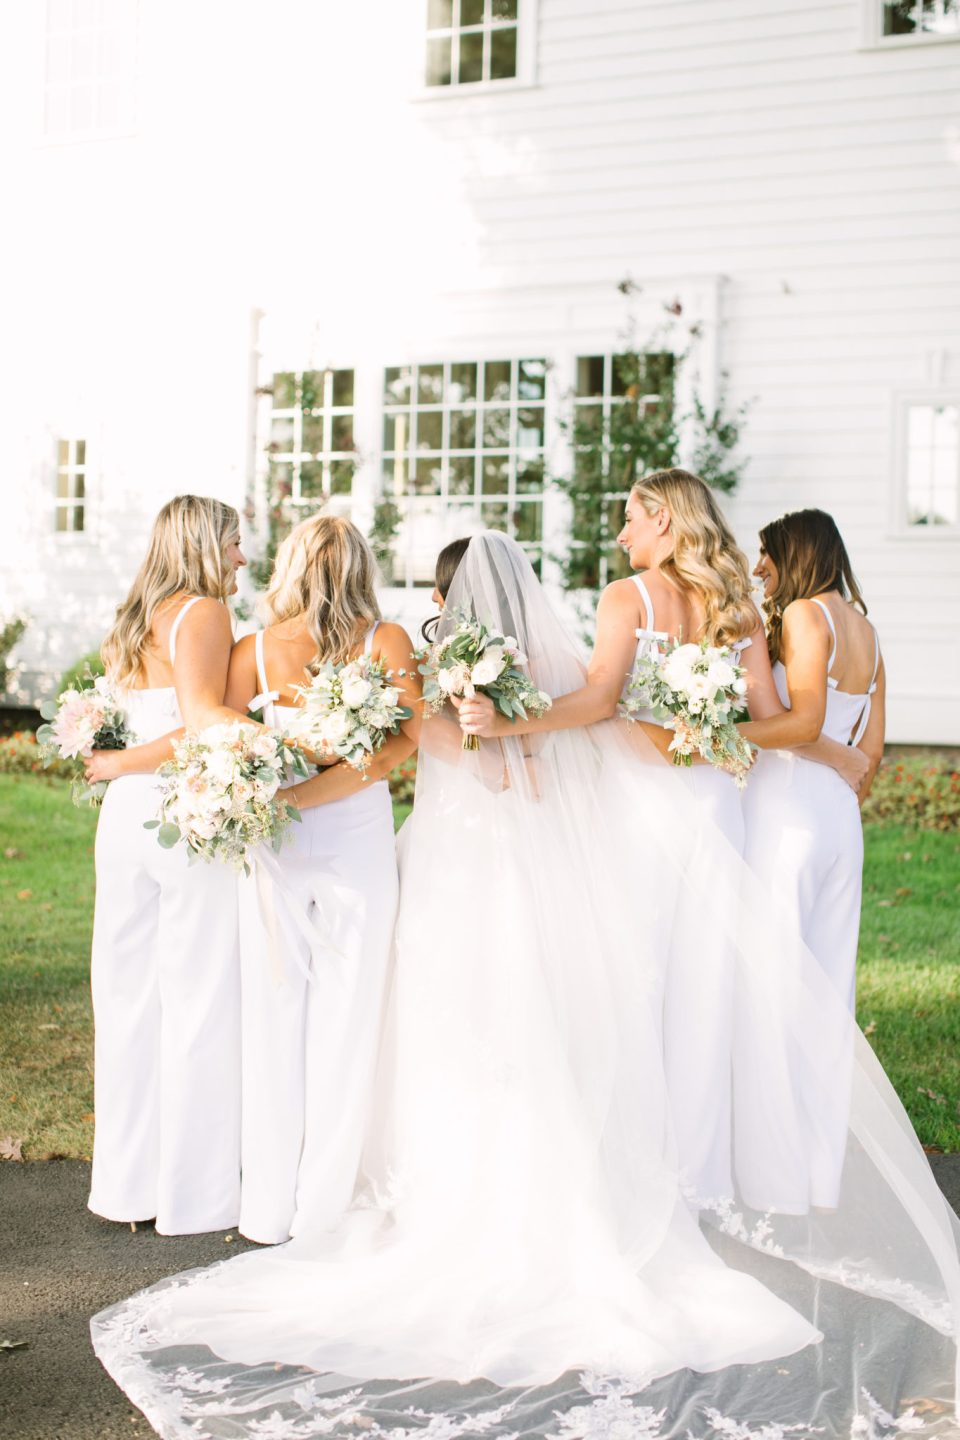 bridesmaids in white jumpsuits hug bride photographed by Ashley Mac Photographs